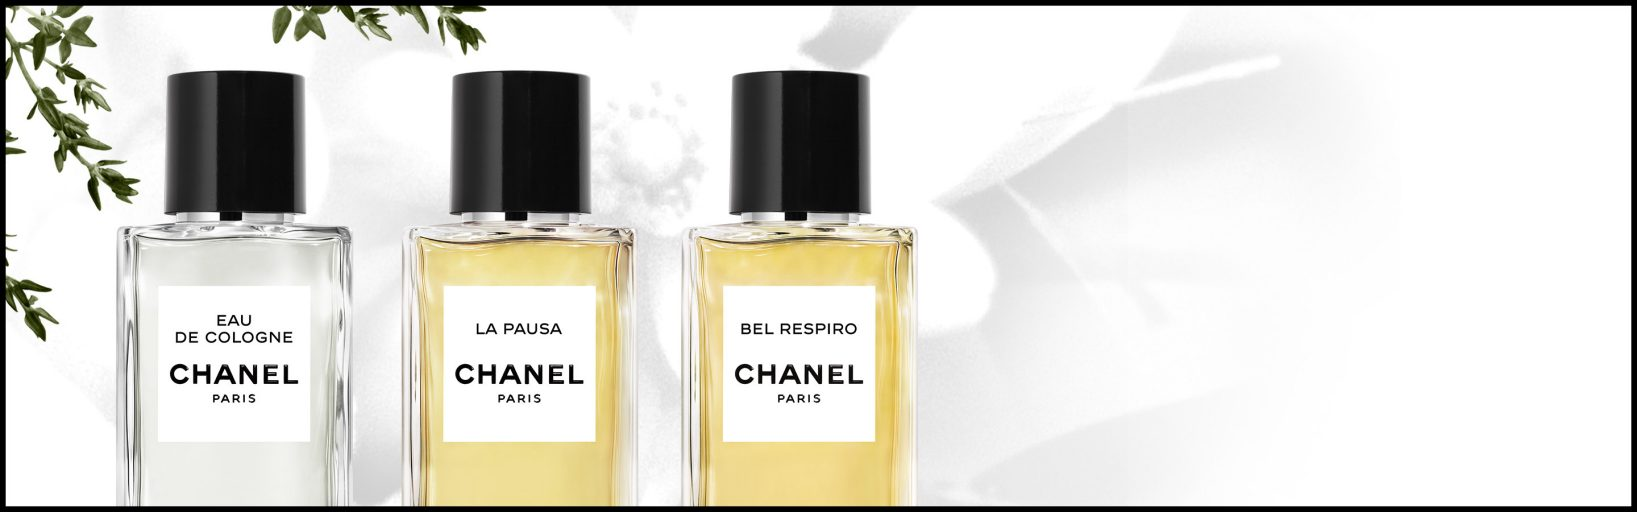 Les Exclusifs精品香水 - CHANEL